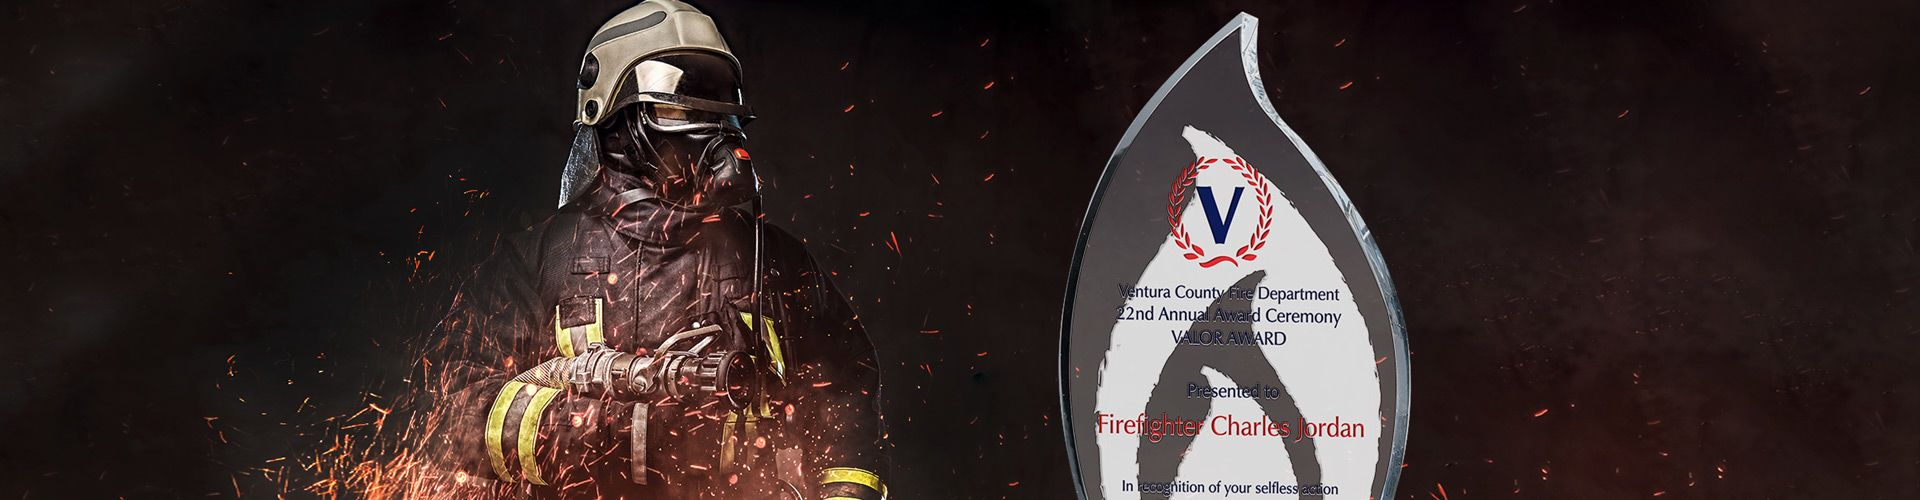 Personalized Crystal Recognition Plaques for Firefighters - Banner 1